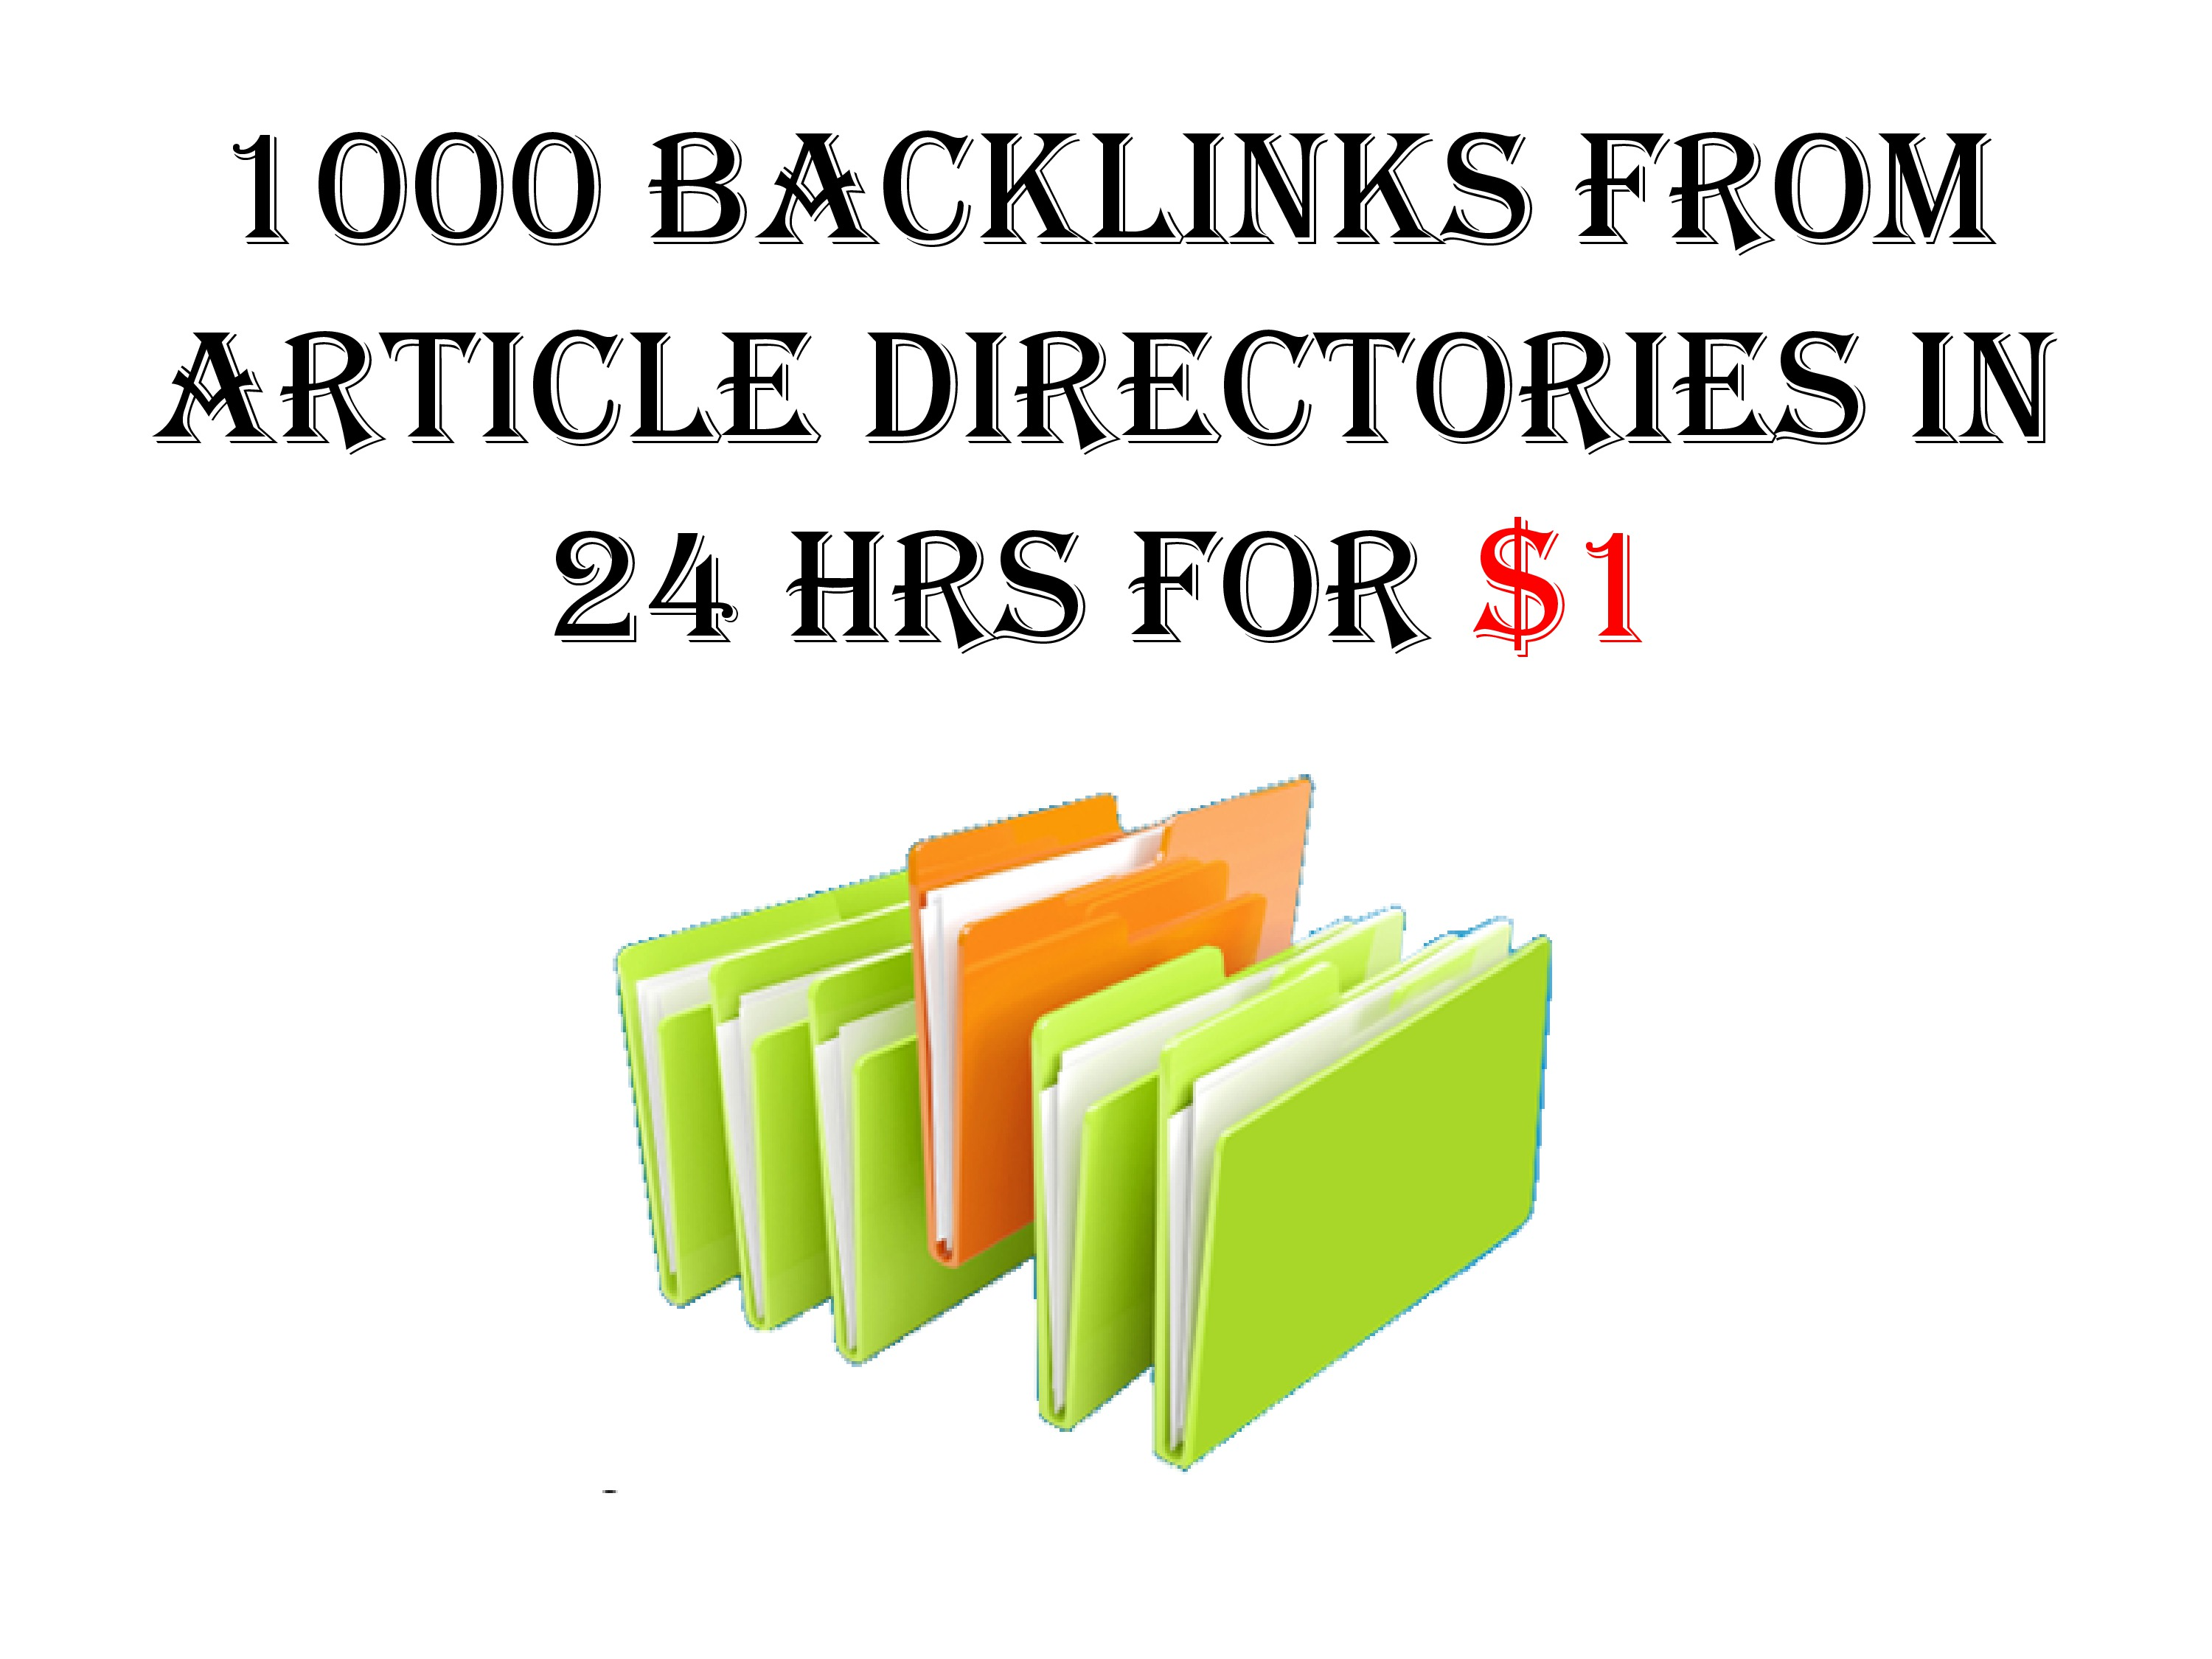 Do 1000 backlinks from Article Directories within 24 hrs